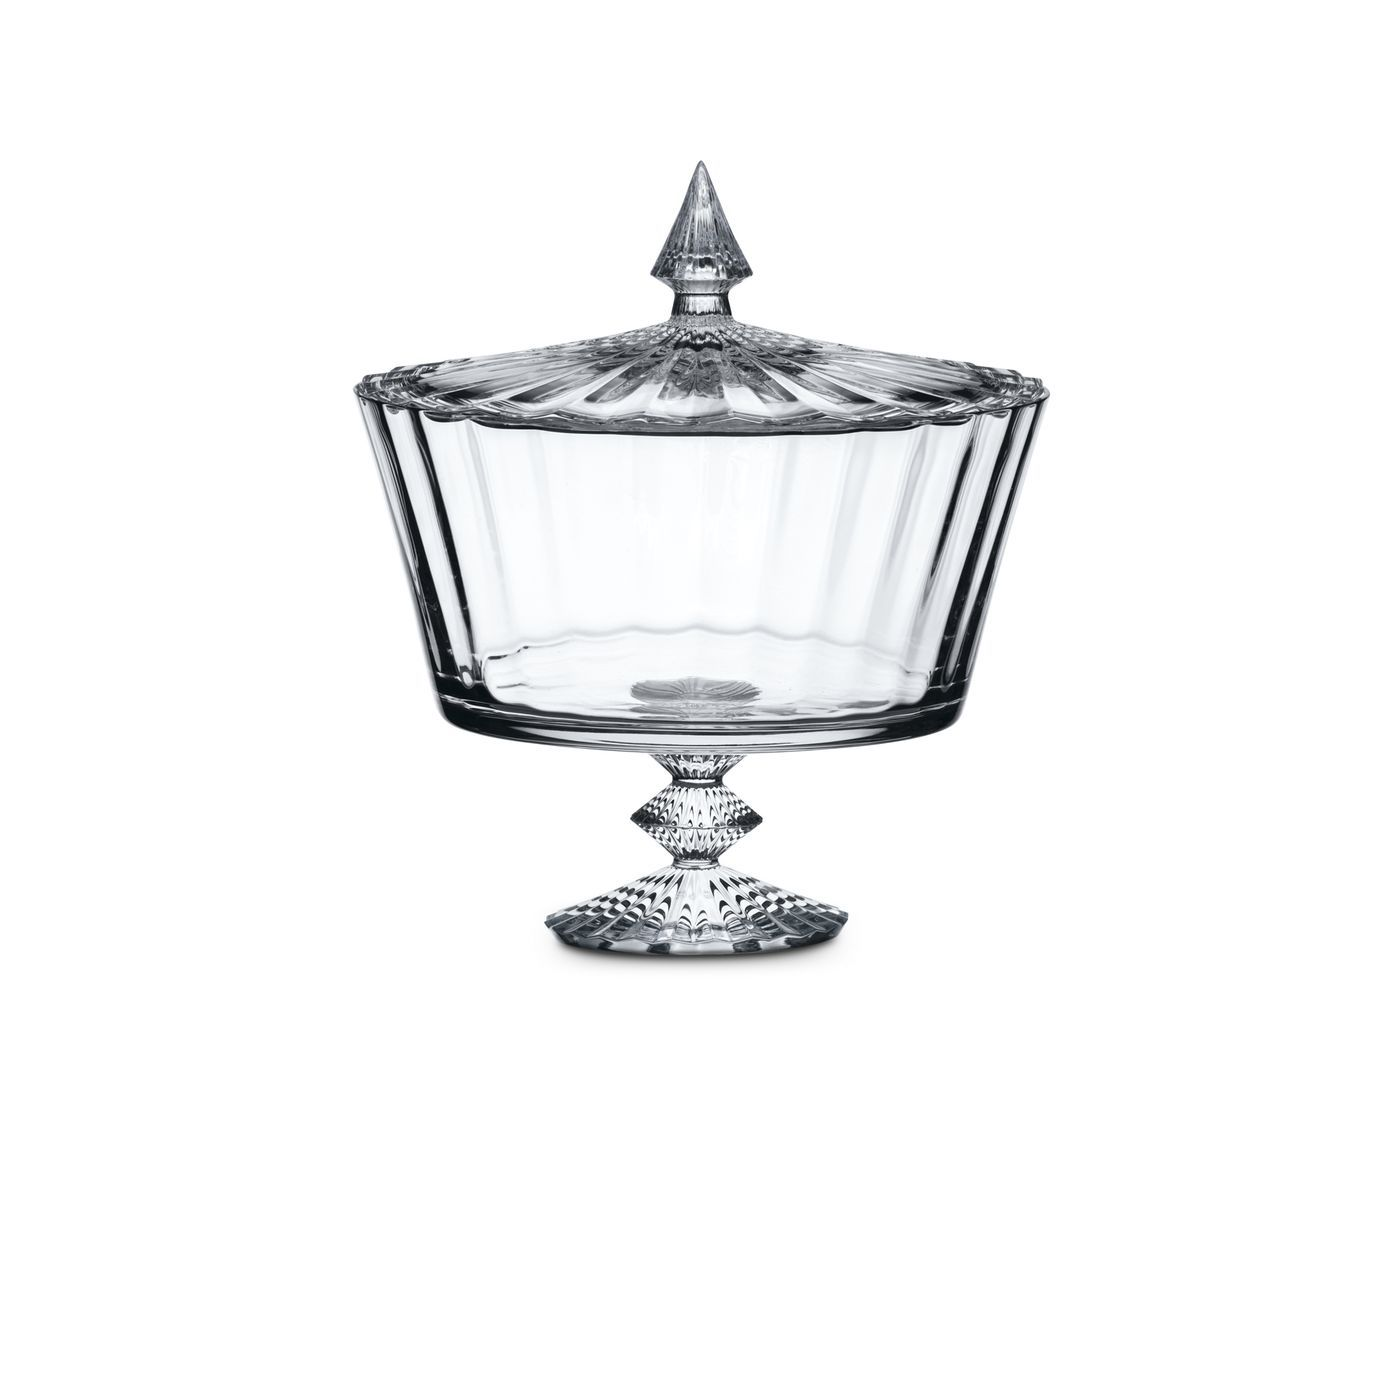 Mille Nuits Candy Box Baccarat Crystal Crystals Vases Decor